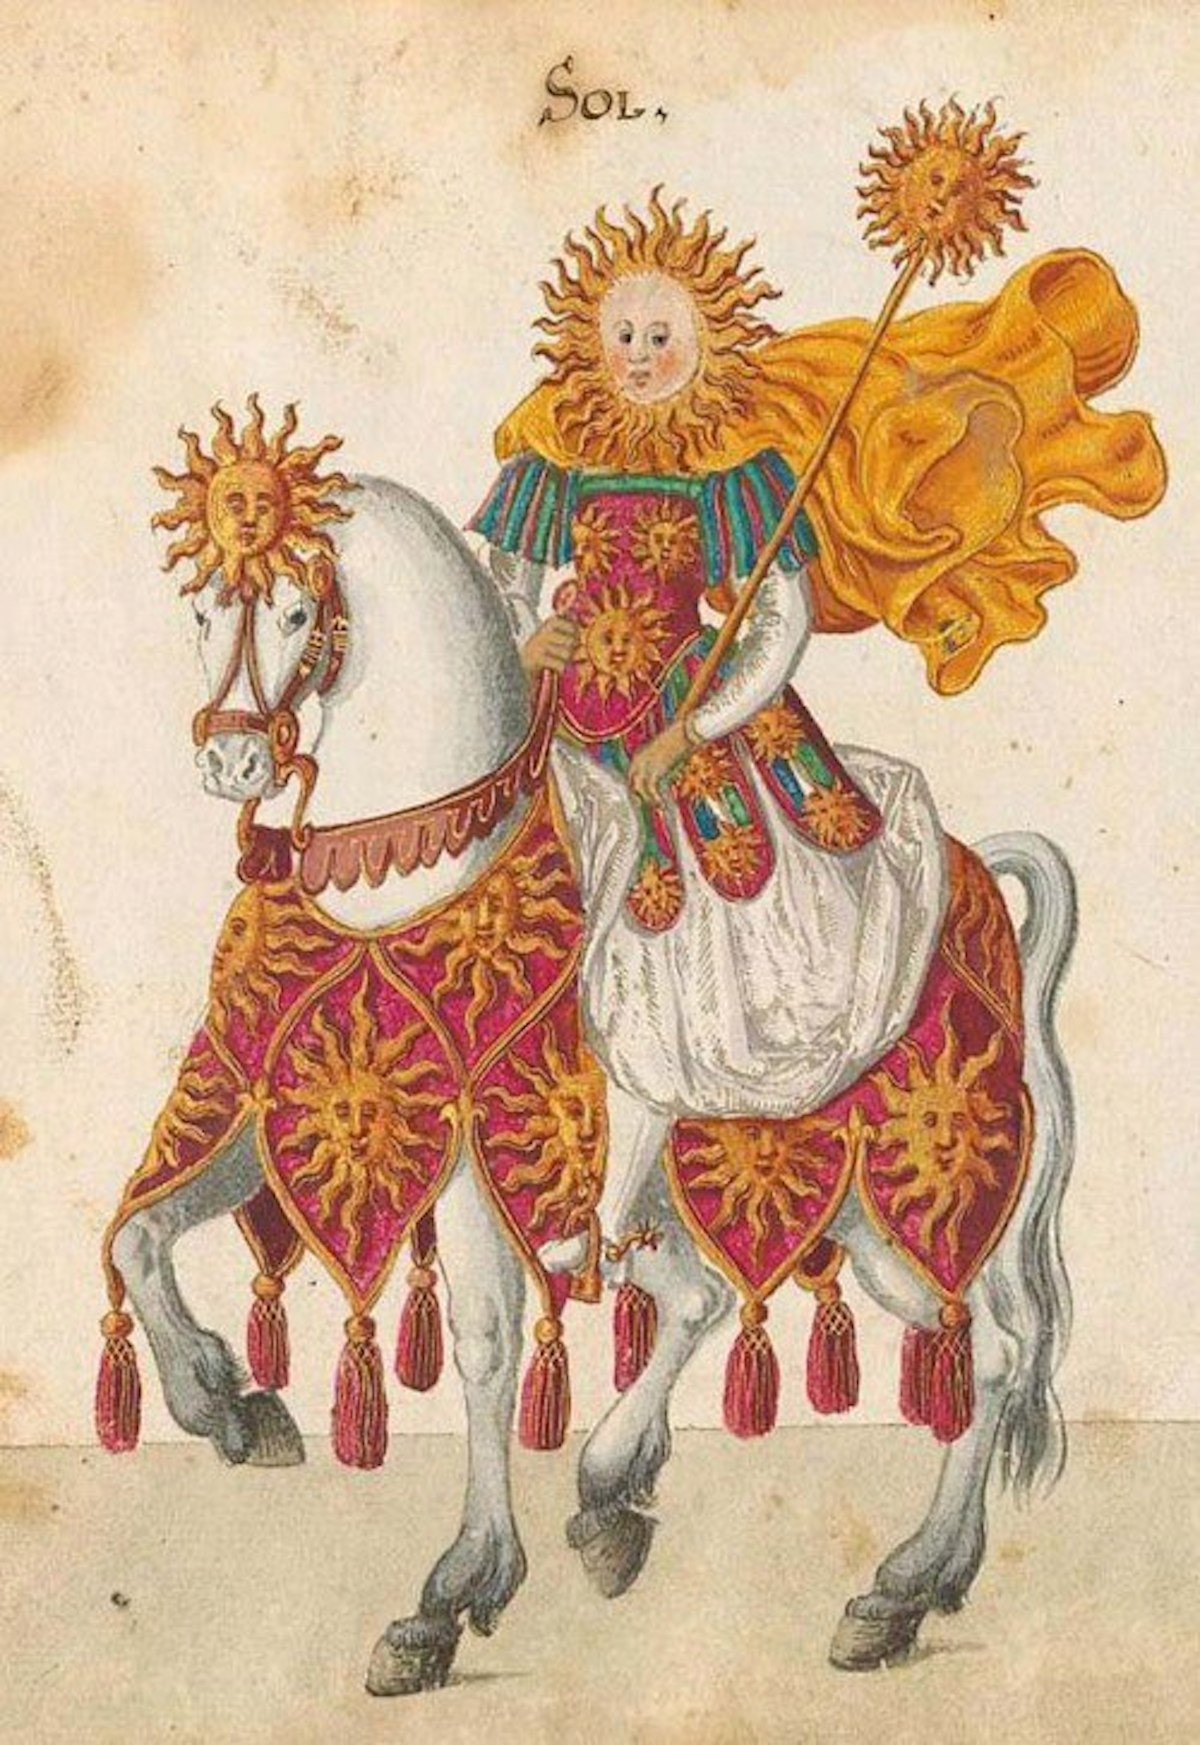 advent 17 The Sun (Sol) 'Allegorical figure featured in celebrations staged to commemorate the Christening of Princess Elisabeth of Hesse in 1596'